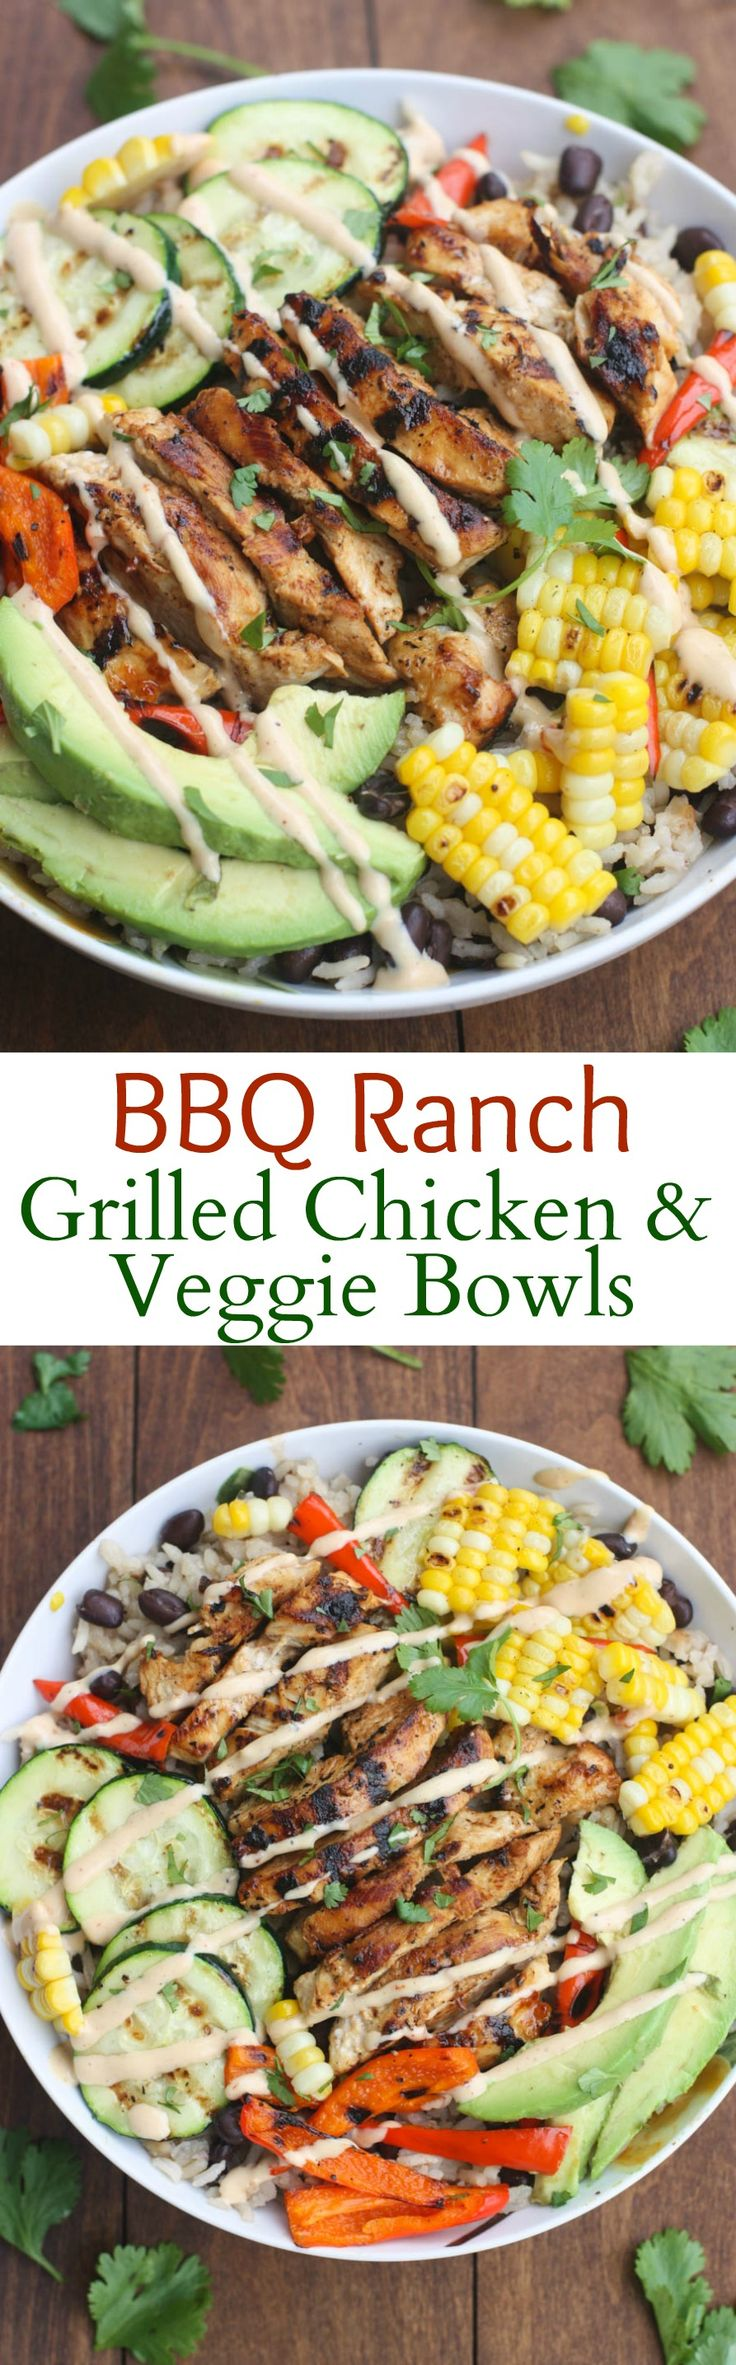 BBQ Ranch Gilled Chicken and Veggie Bowls served over black bean rice with delicious grilled veggies, marinated and grilled chicken and a delicious honey BBQ ranch sauce. | Tastes Better From Scratch @HVRanch #ad #RanchEverything